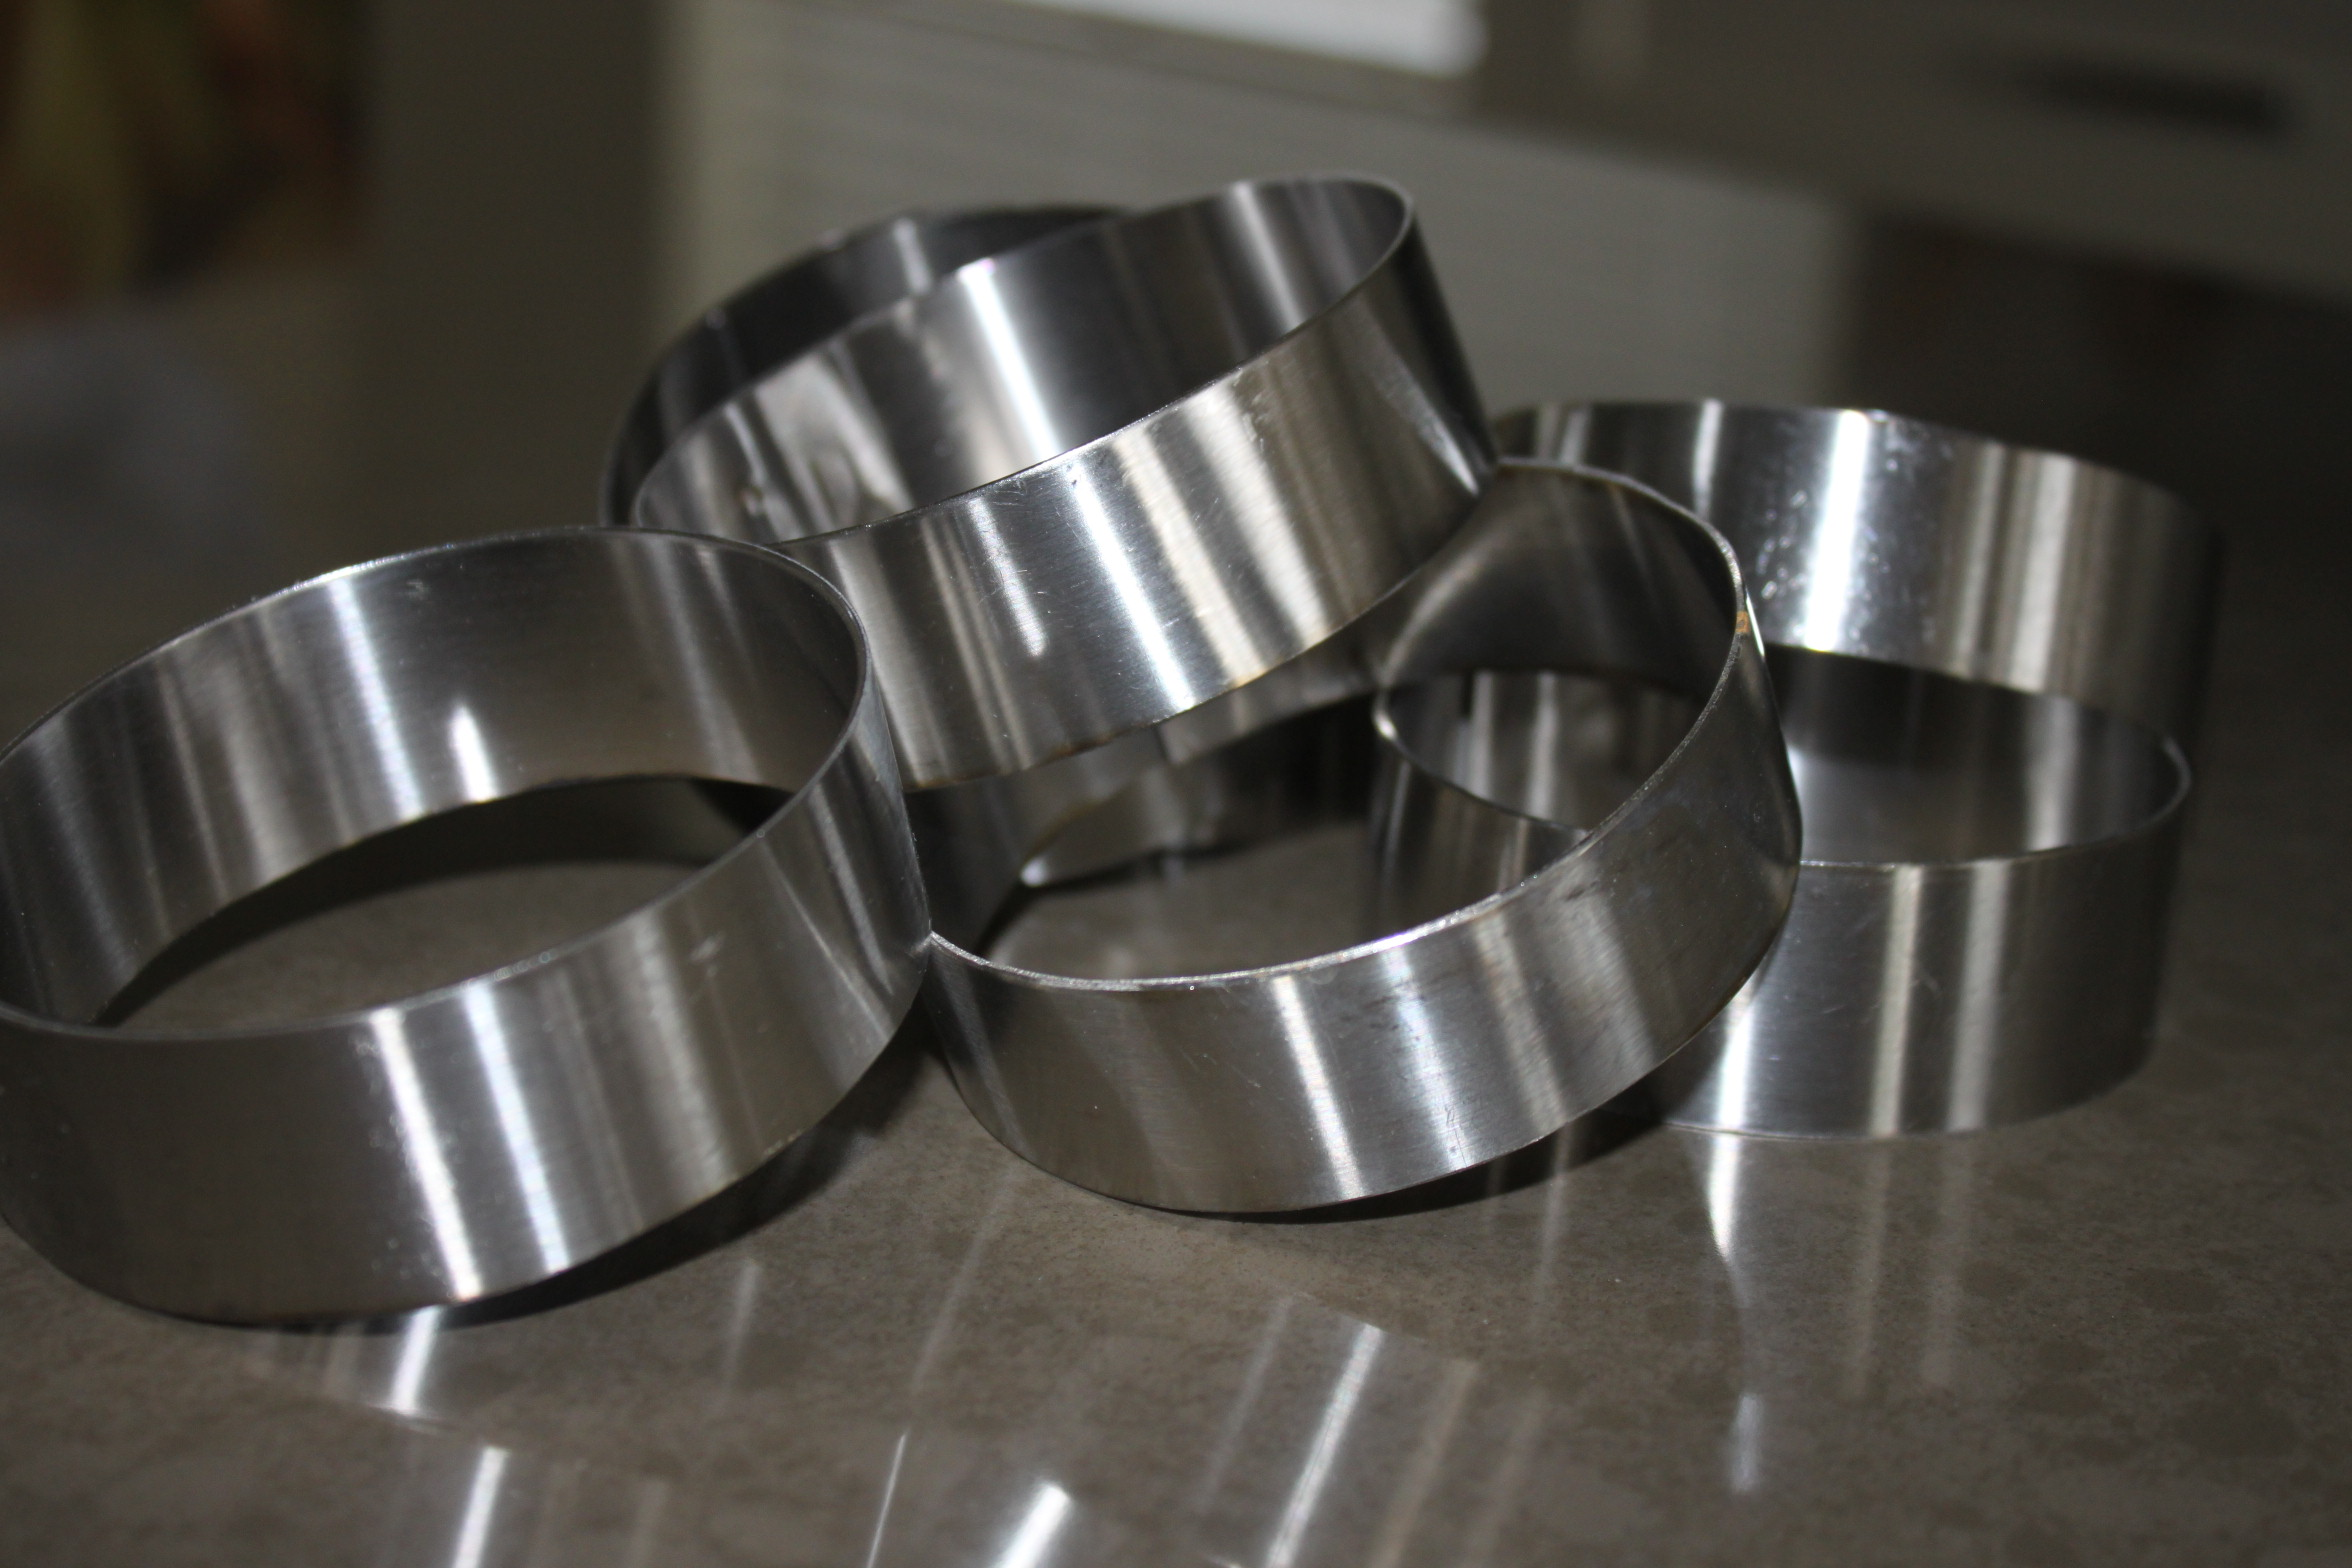 Stainless steel rings | urbnspice.com